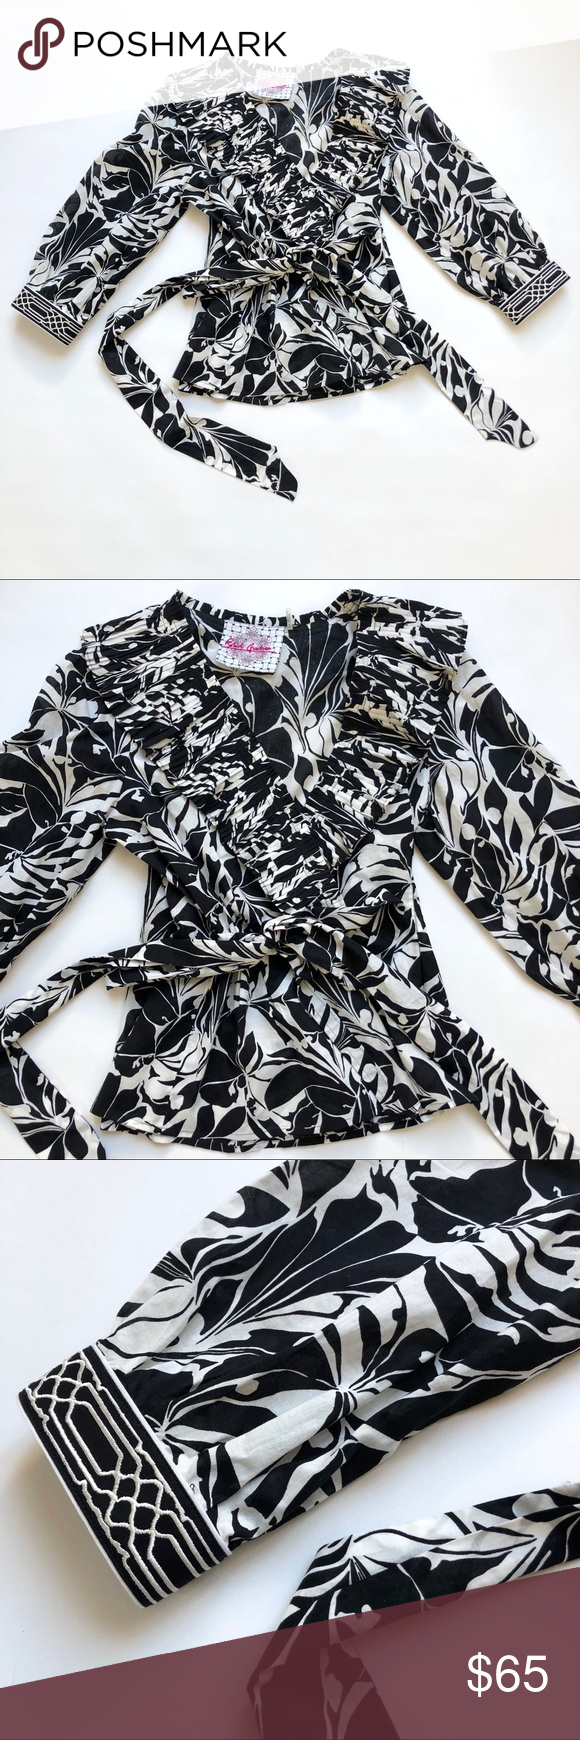 Robert Graham Floral Ruffle Collar Faux Wrap Top Robert Graham Black White Floral Pleated Ruffle Collar Faux Wrap Top  Size: petite small Color: Black & White  3/4 sleeve V neck Adjustable wrap waist Ribbon belt tie  Pleated ruffle collar Embroidered detail on cuffs Black white floral graphic print Cotton Excellent condition  Measurements are pictured Robert Graham Tops Blouses